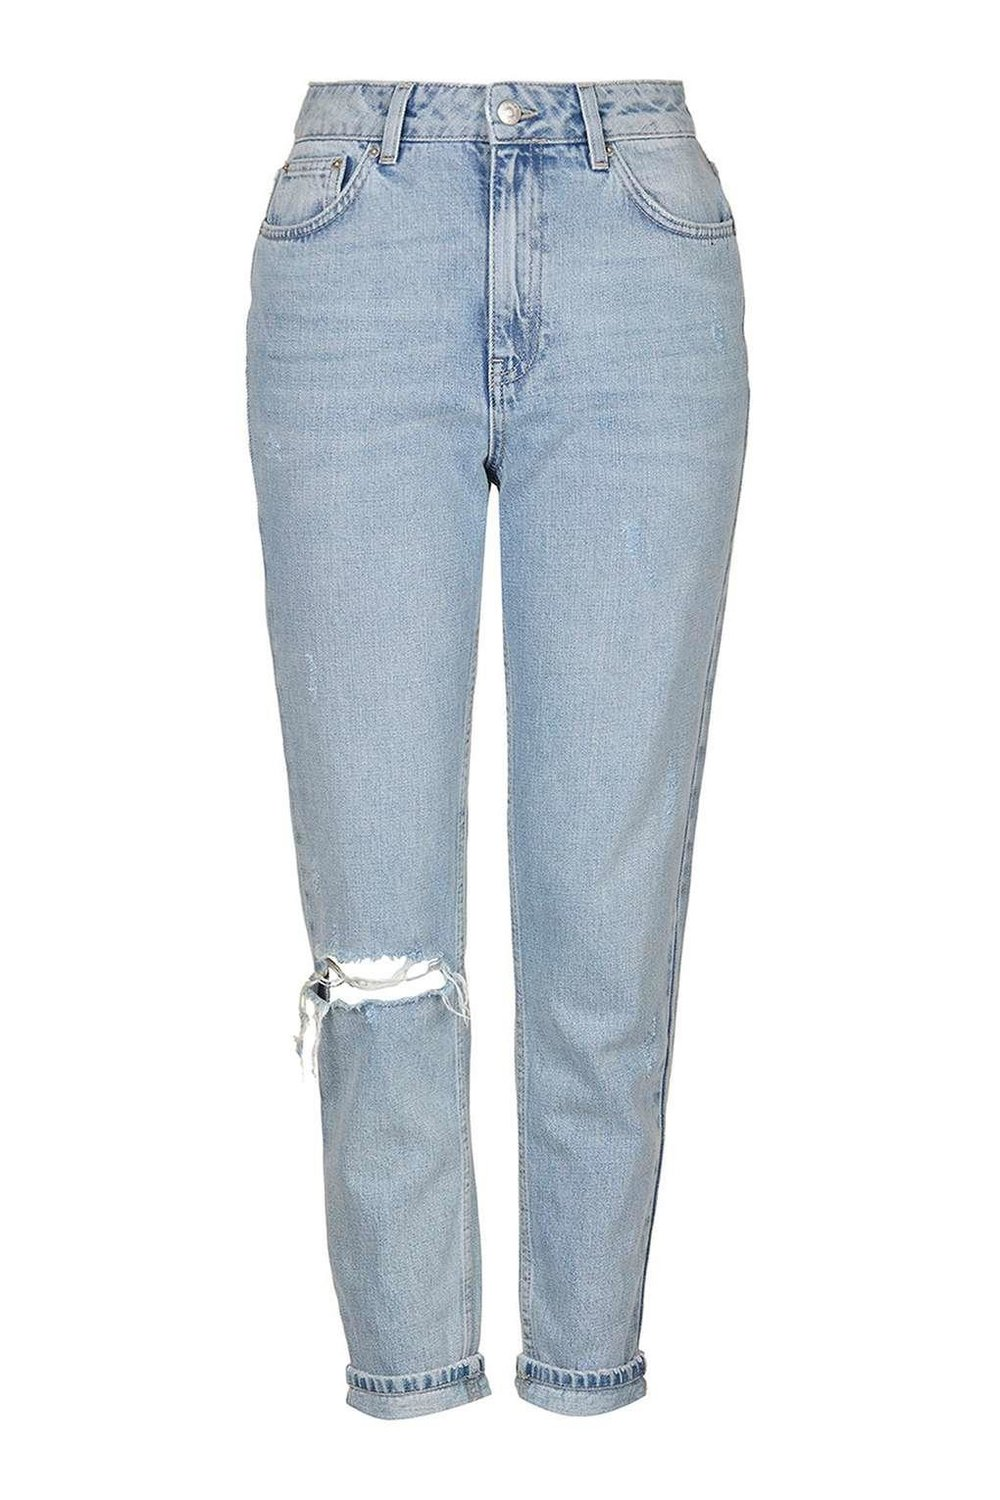 TopShop MOTO Bleach Rip Mom Jeans